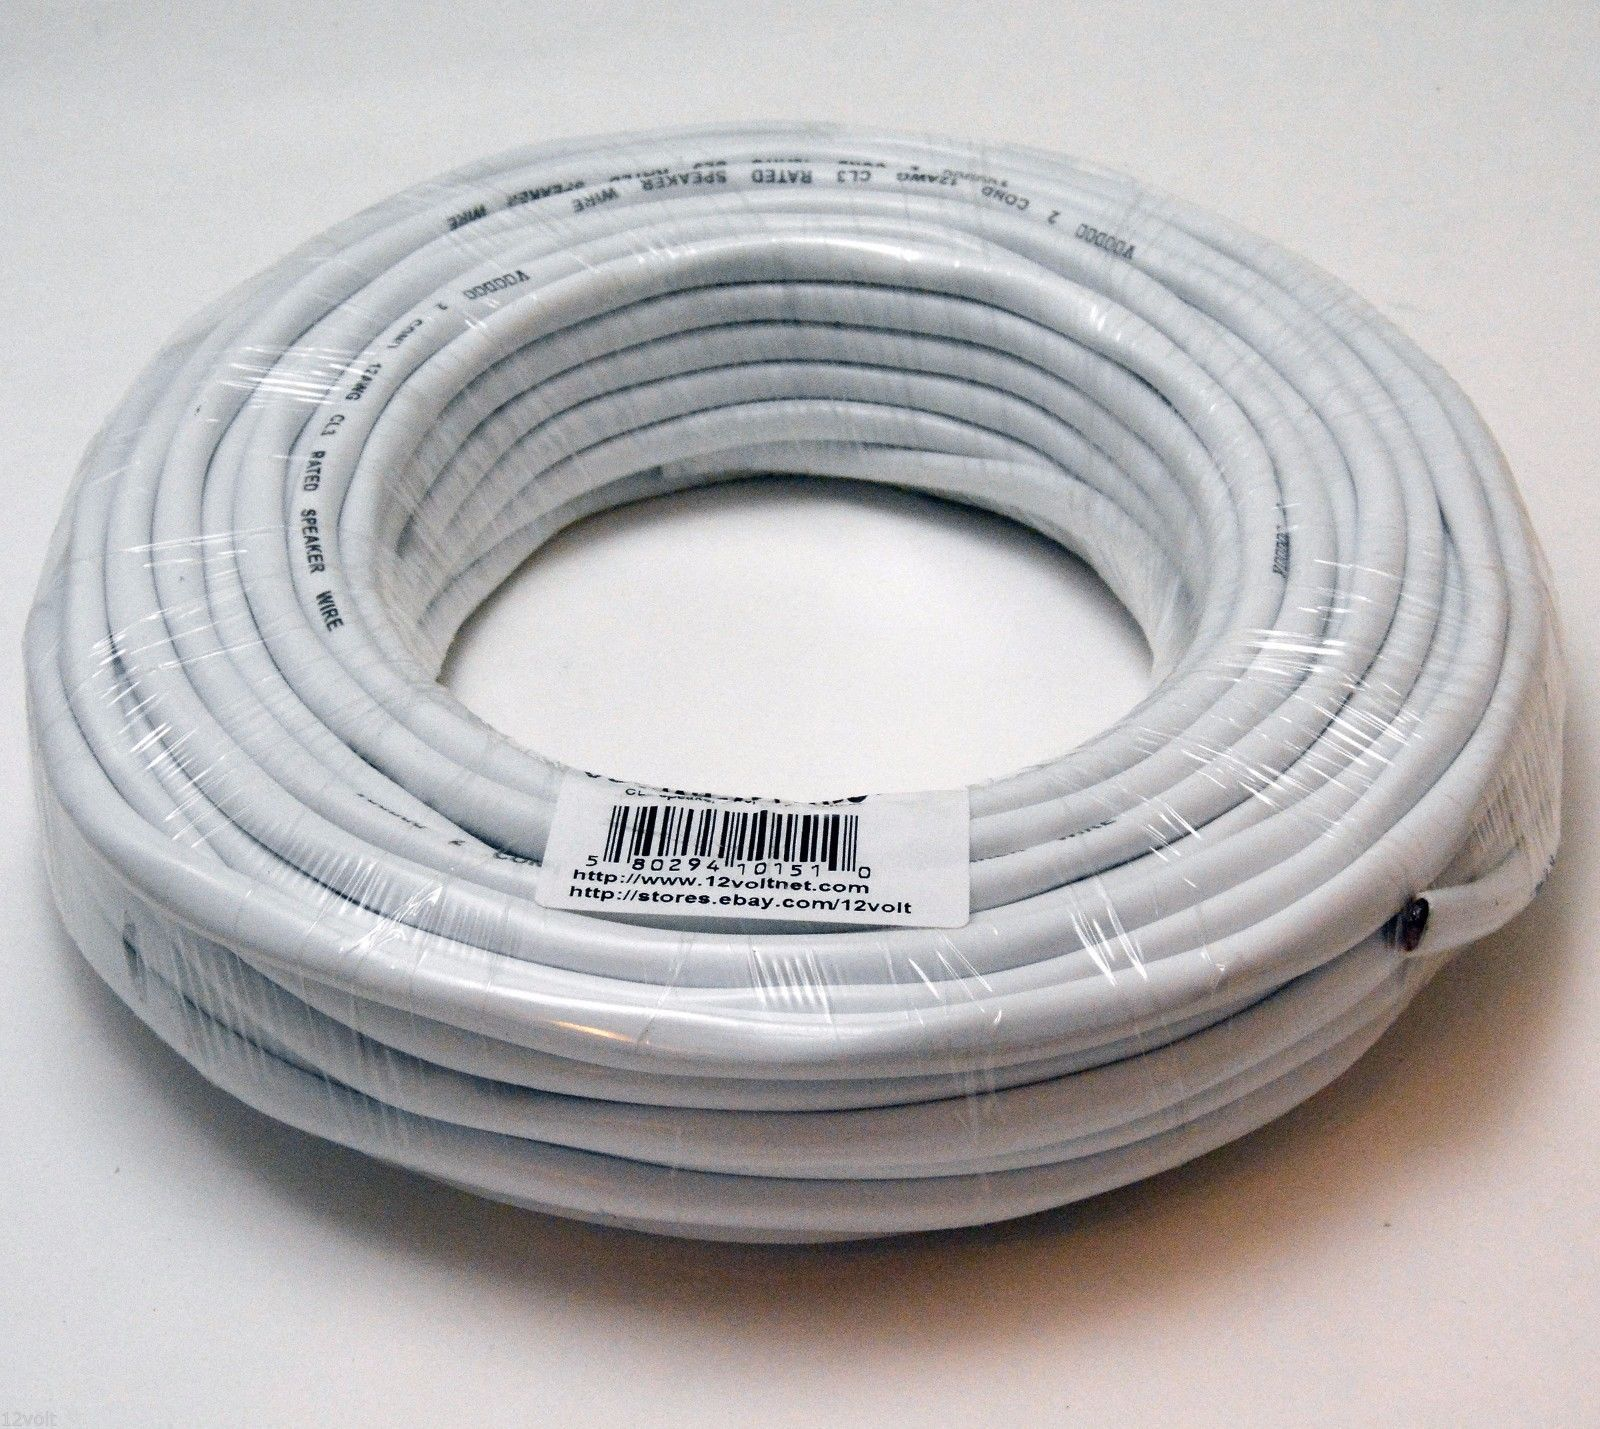 Voodoo in Wall CL3 Rated Speaker Wire 12 and 20 similar items